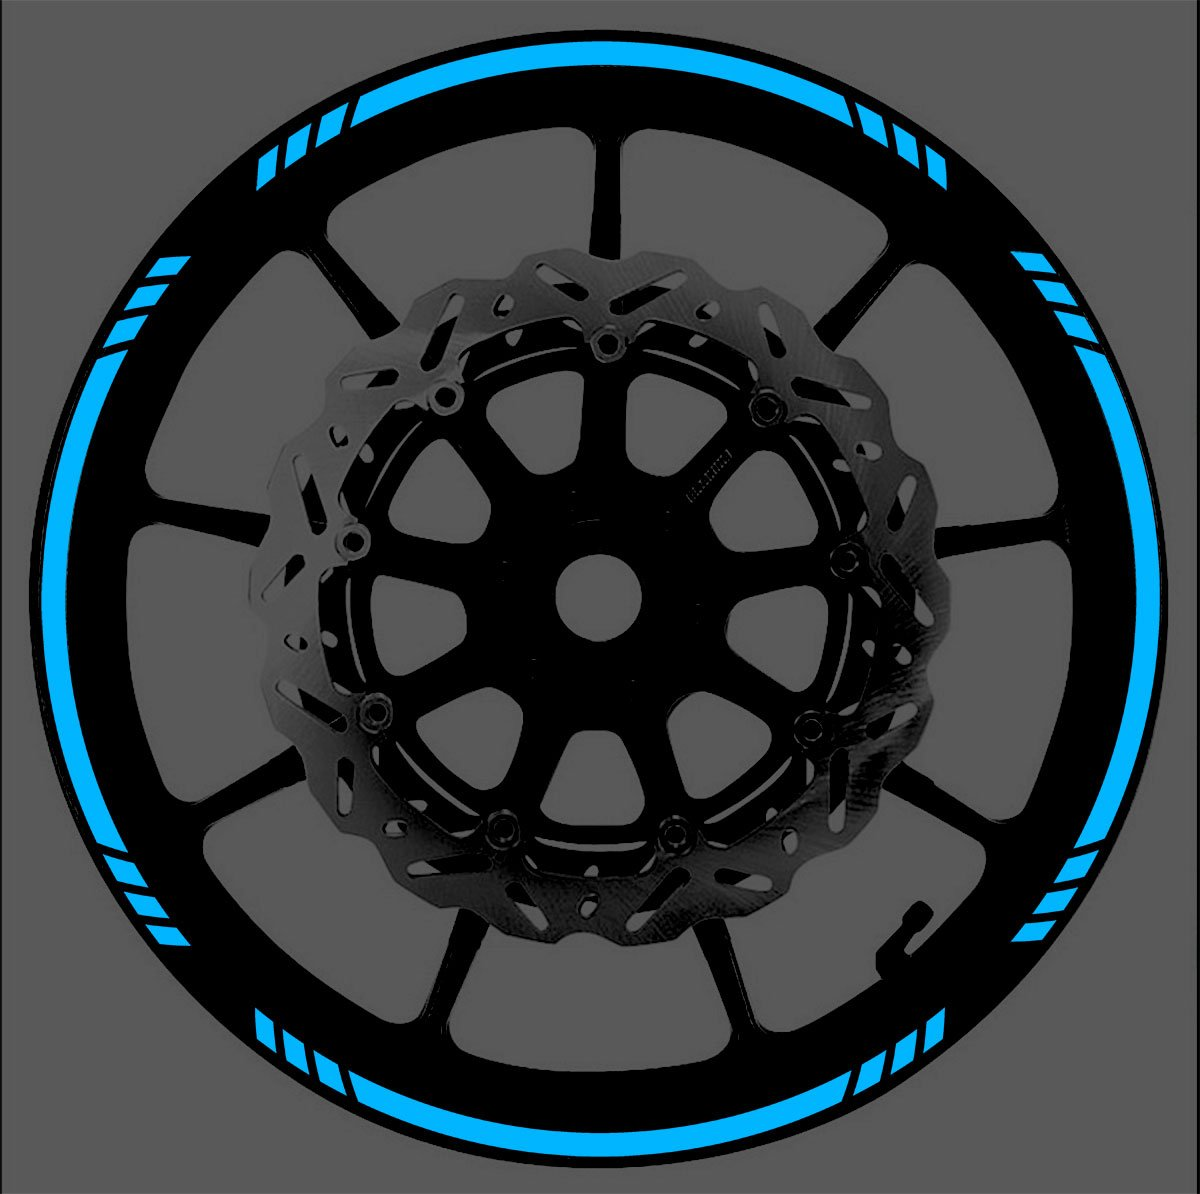 Vehicleartz BLUE Reflective Speed Graduated Wheel Rim Tape Stripe fit Motorcycles, Cars, Trucks